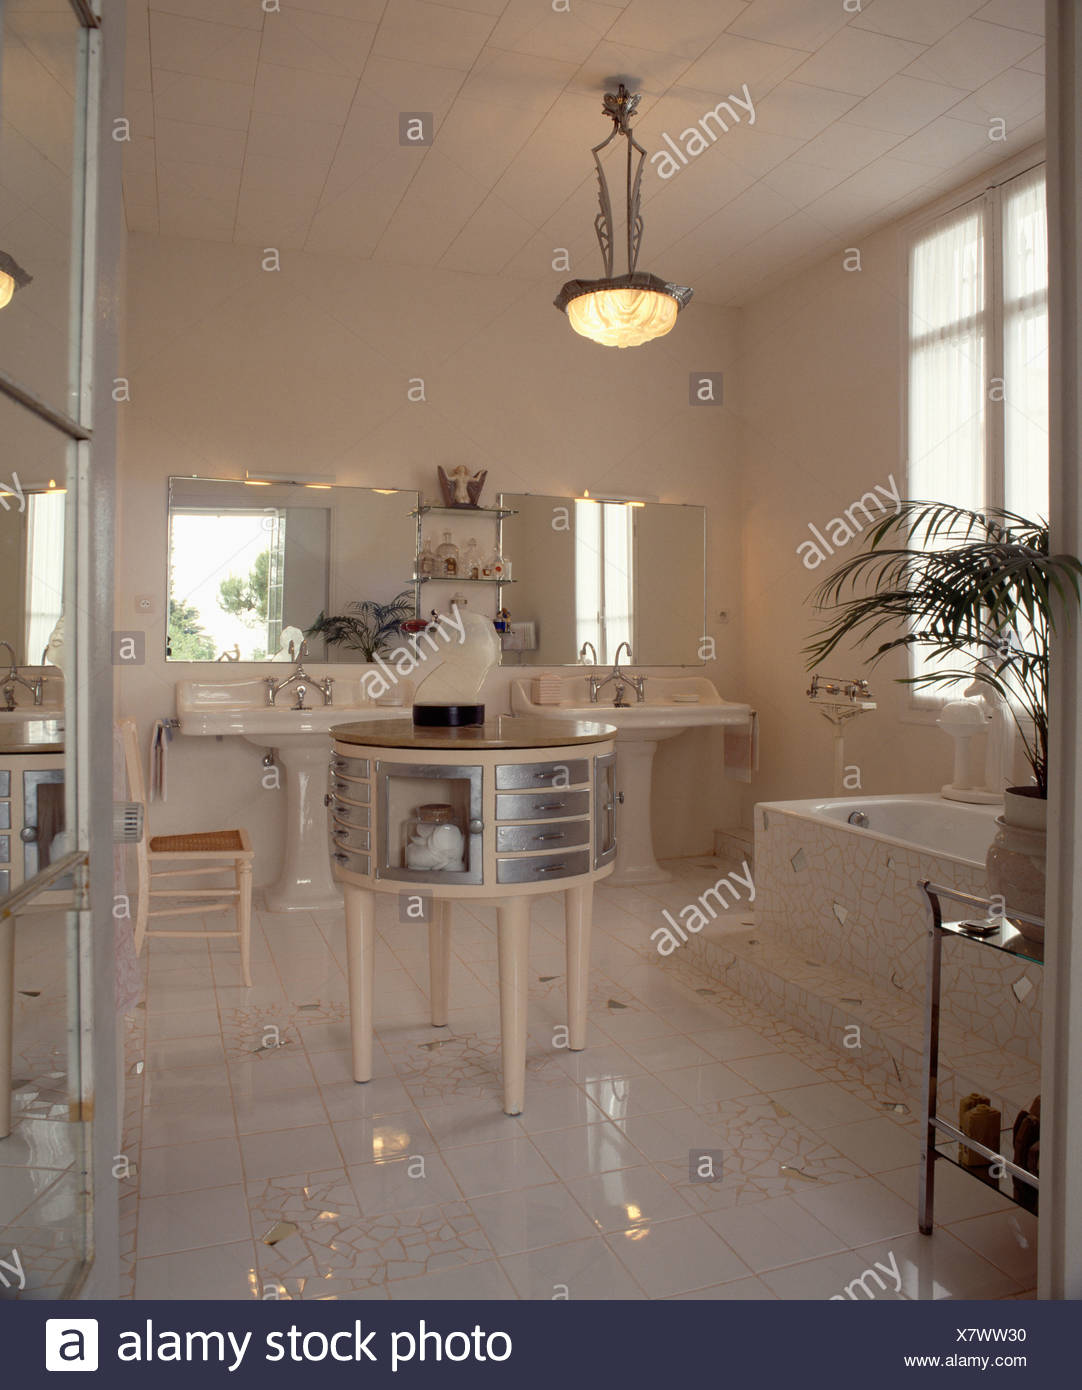 White Art Deco Bathroom With Chrome And White Circular Table And Mirror  Tiles In White Tiled Floor